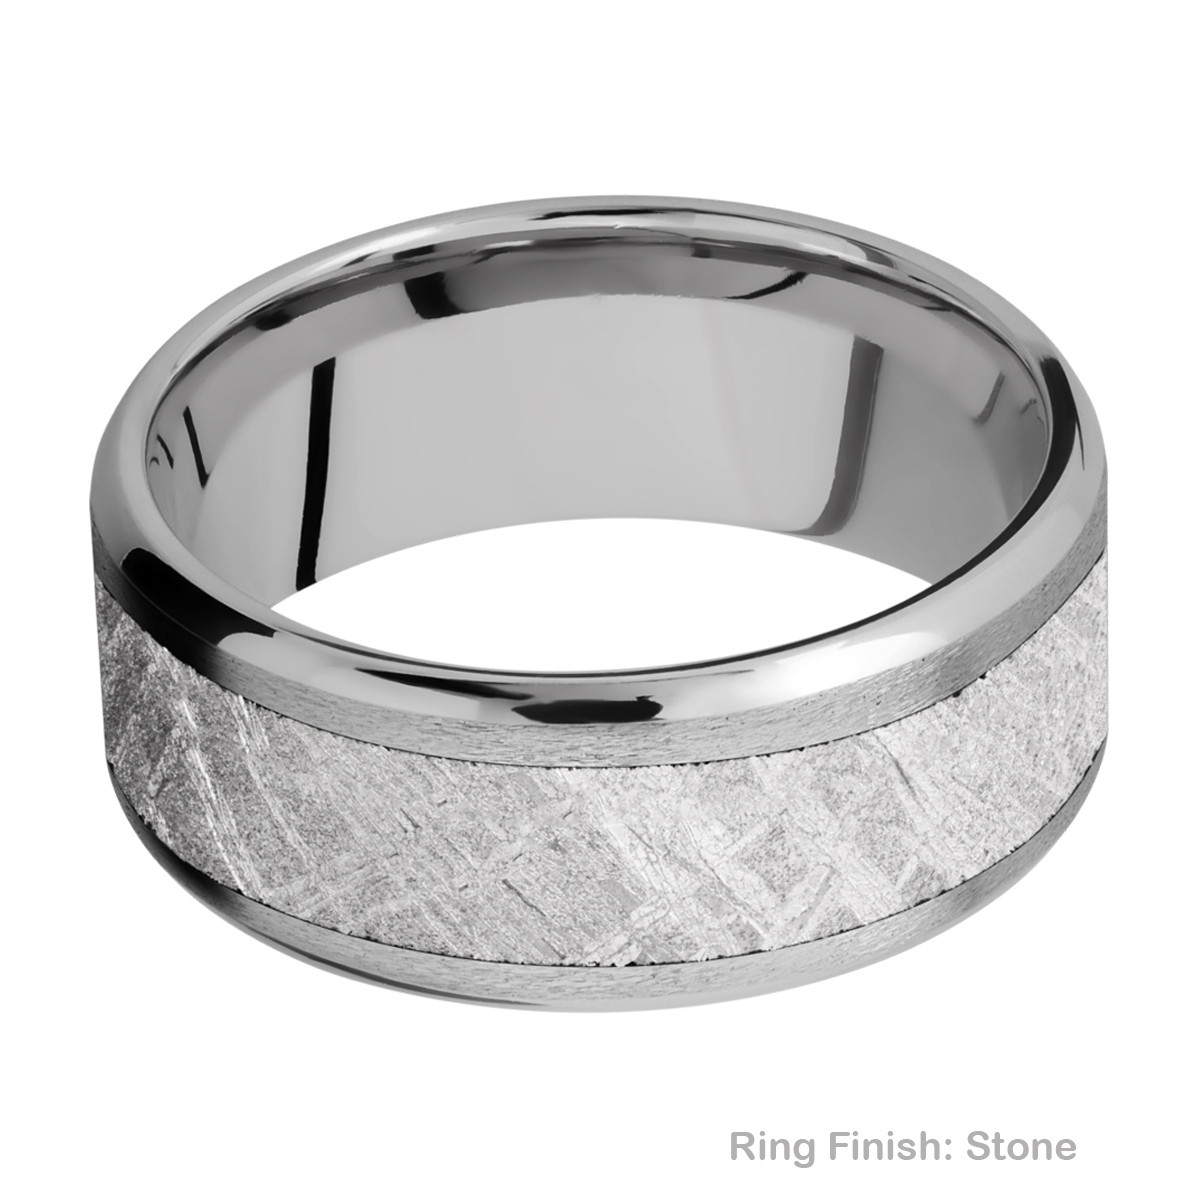 Lashbrook 9B16(NS)/METEORITE Titanium Wedding Ring or Band Alternative View 5